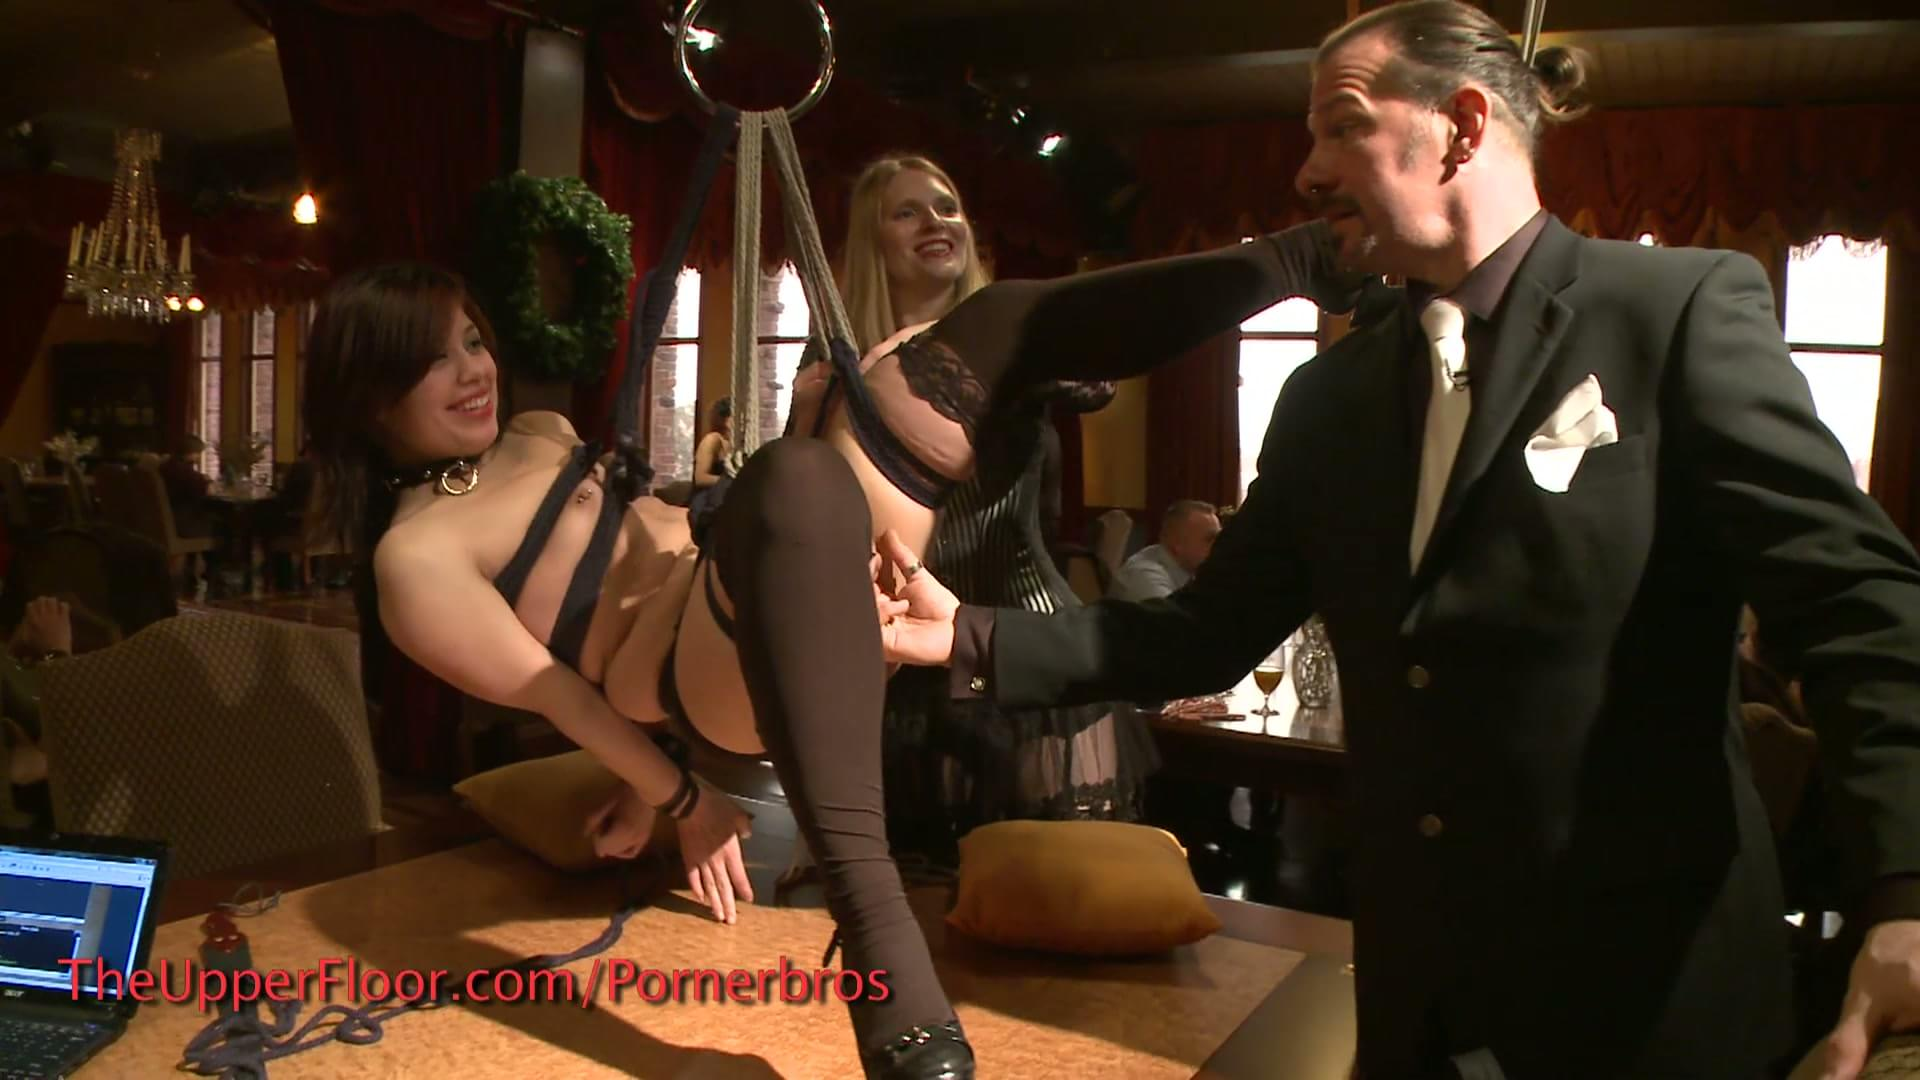 Hot!!!!!!!!!!! Always video of bdsm you